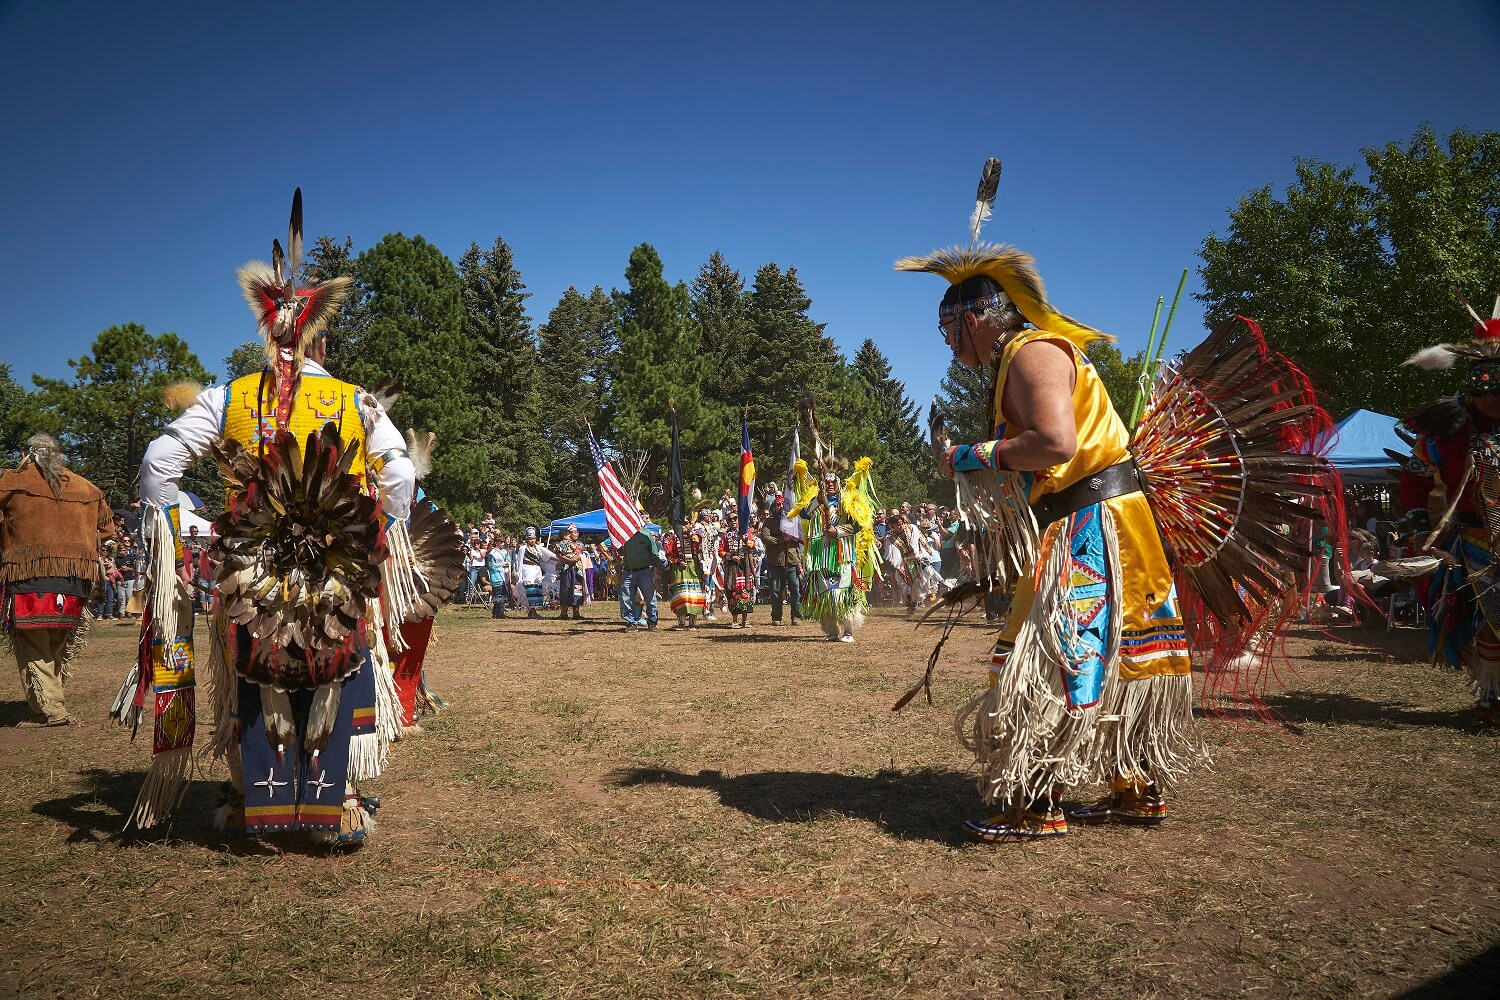 Grand Procession for Powwow, Dancers in American Indian Native fancy dress.